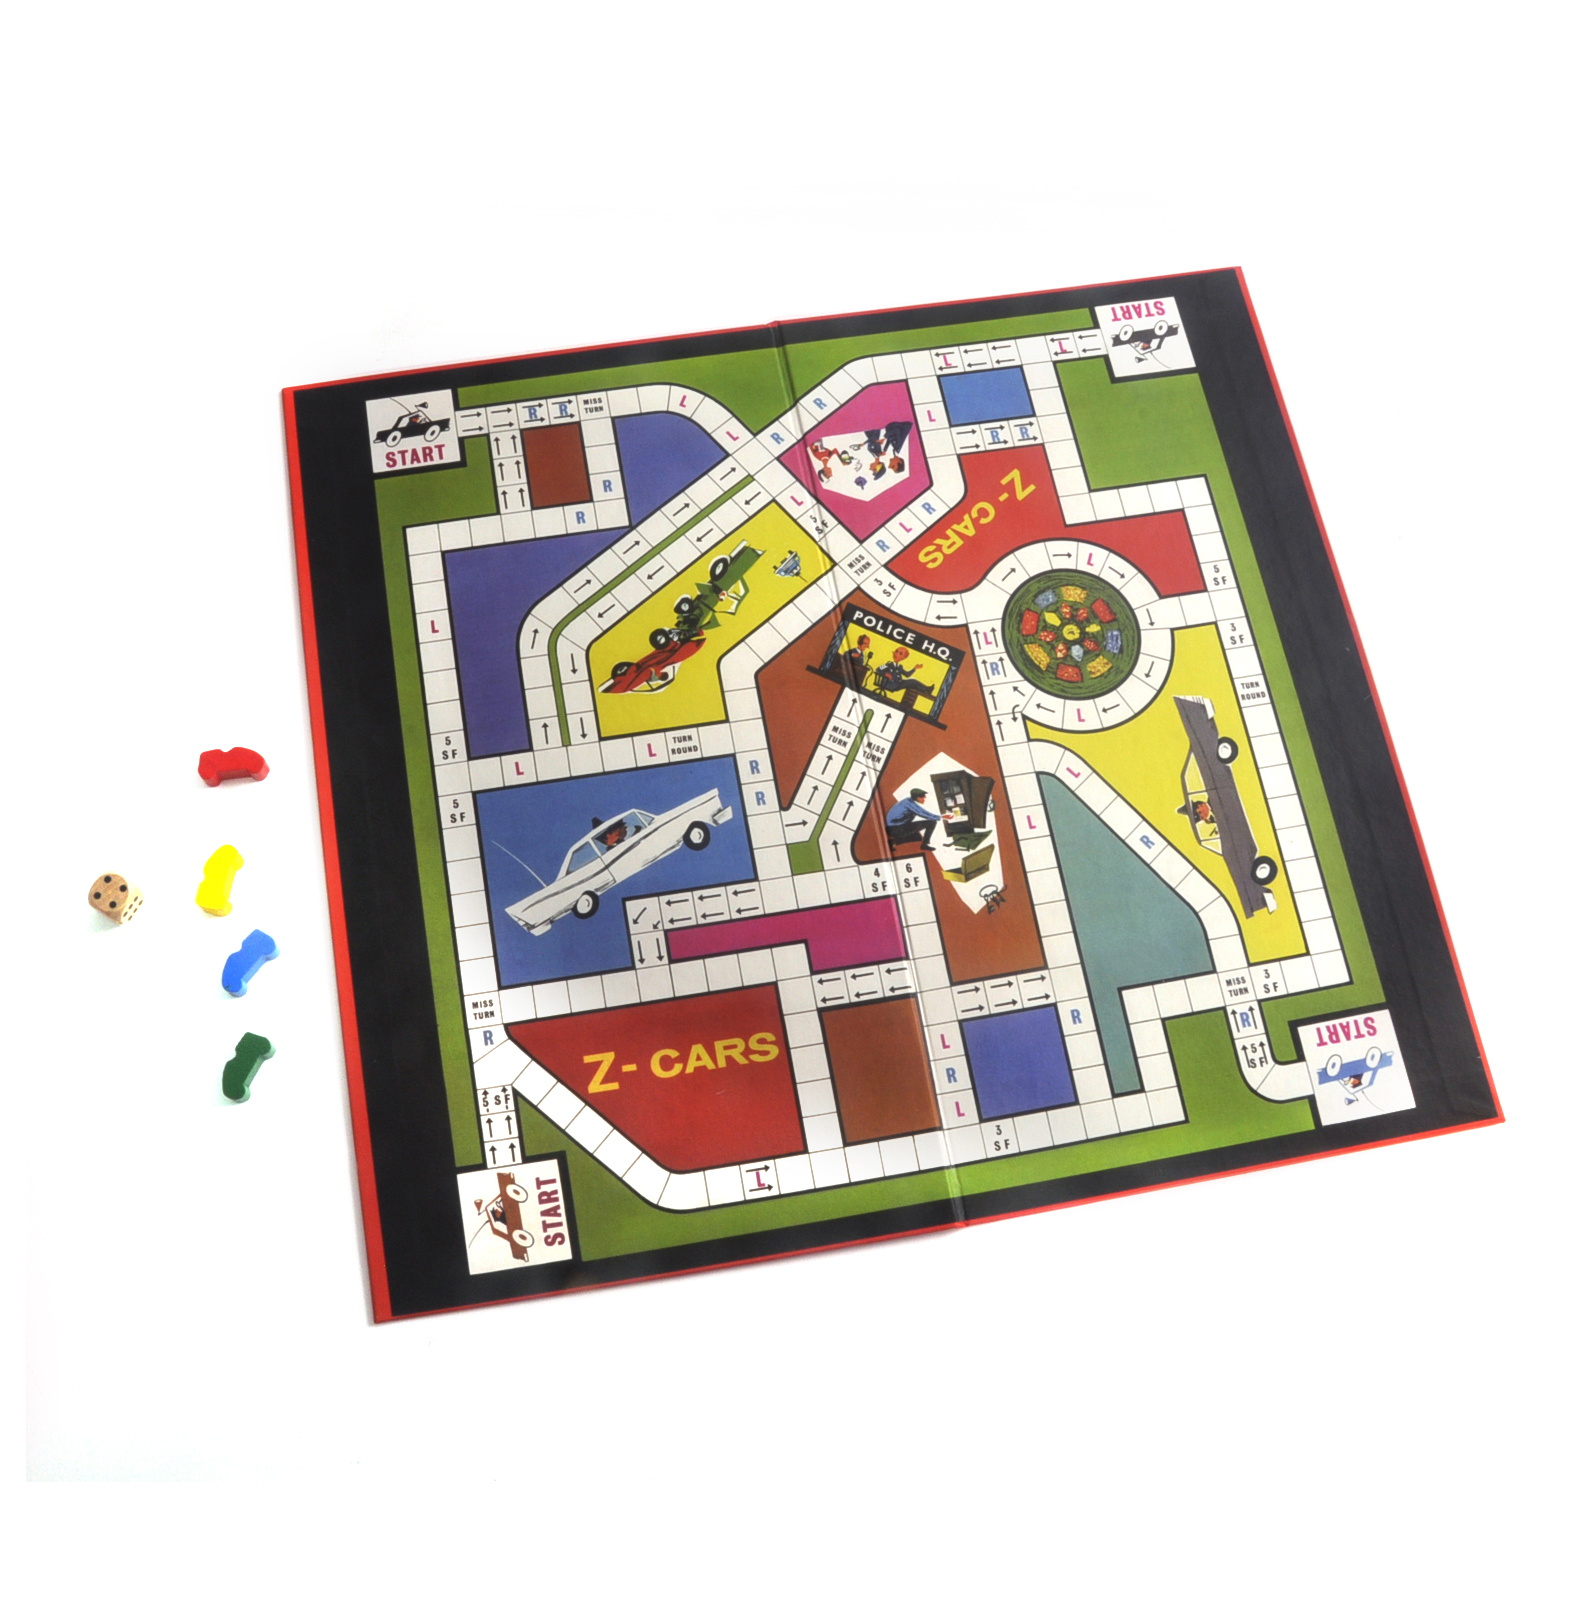 z cars the classic 1960s tv series retro board game pink cat shop. Black Bedroom Furniture Sets. Home Design Ideas